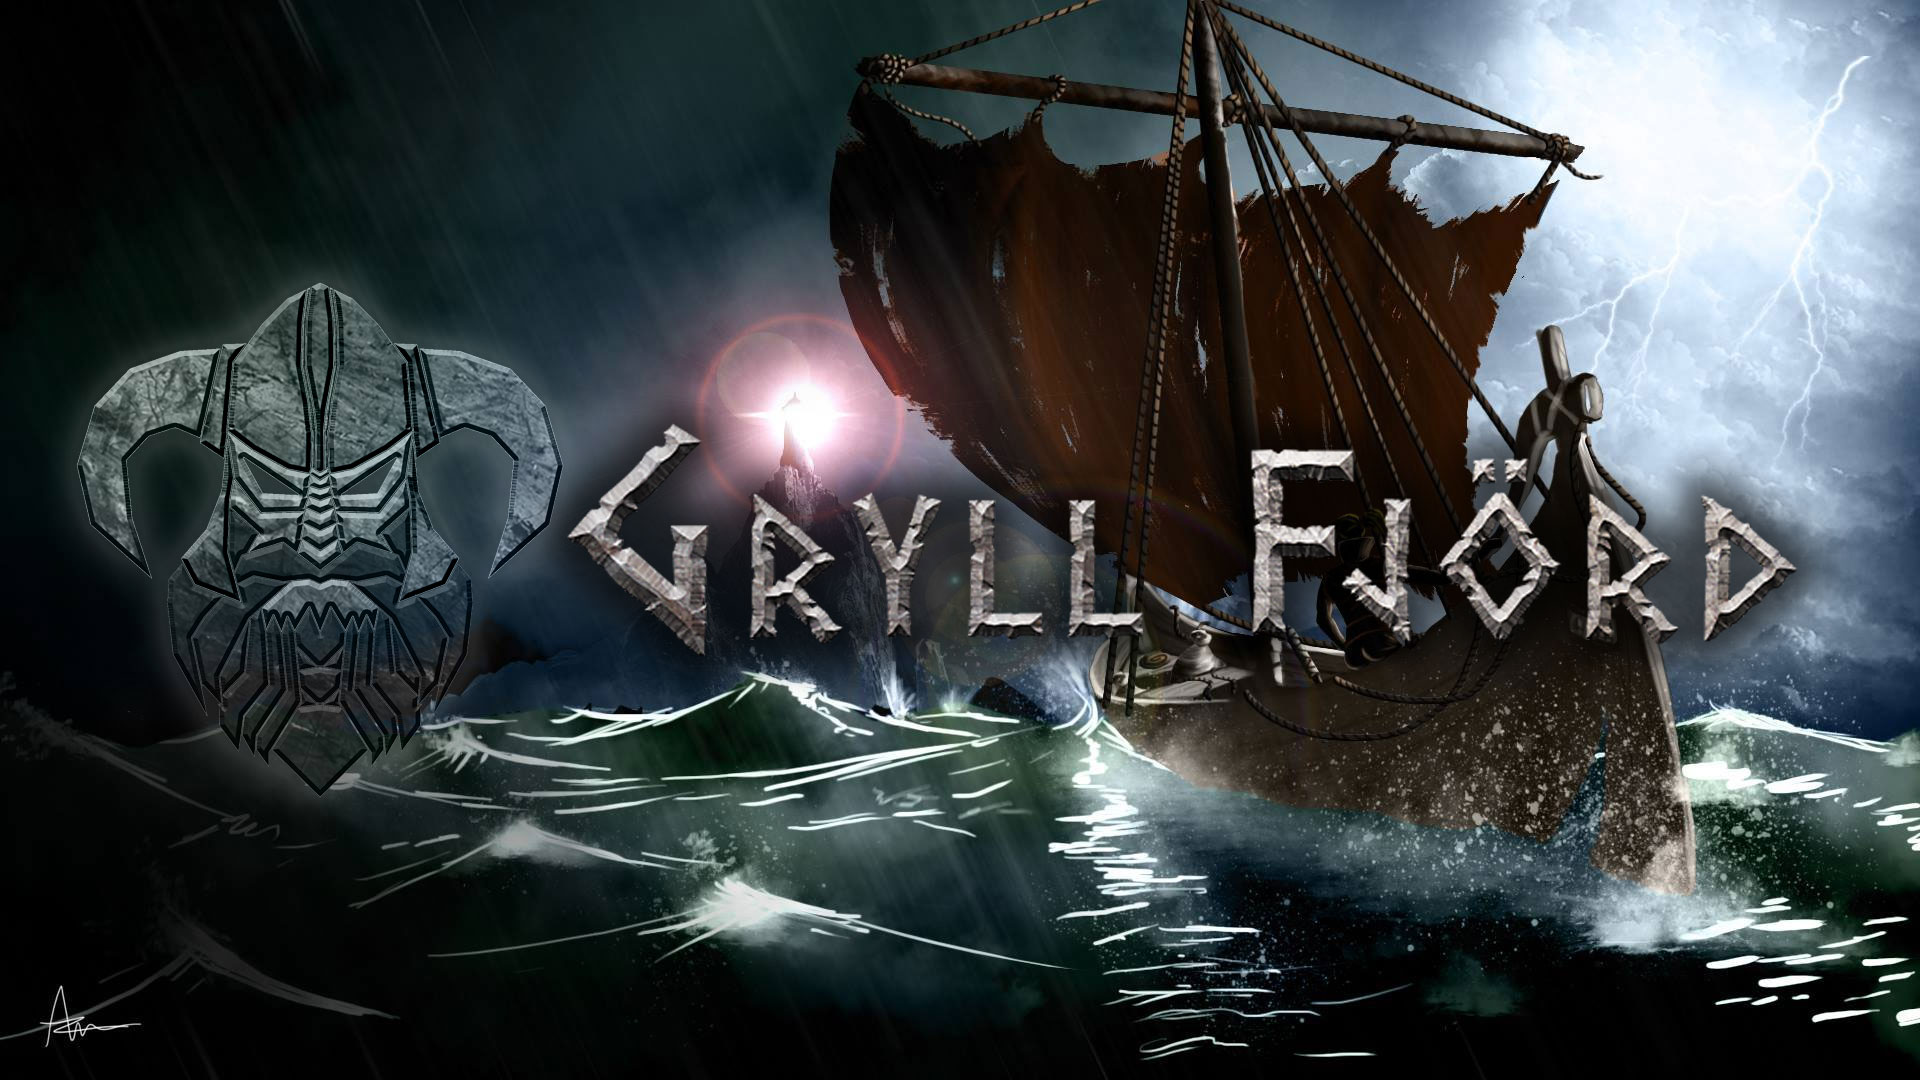 GryllFjord_Screen